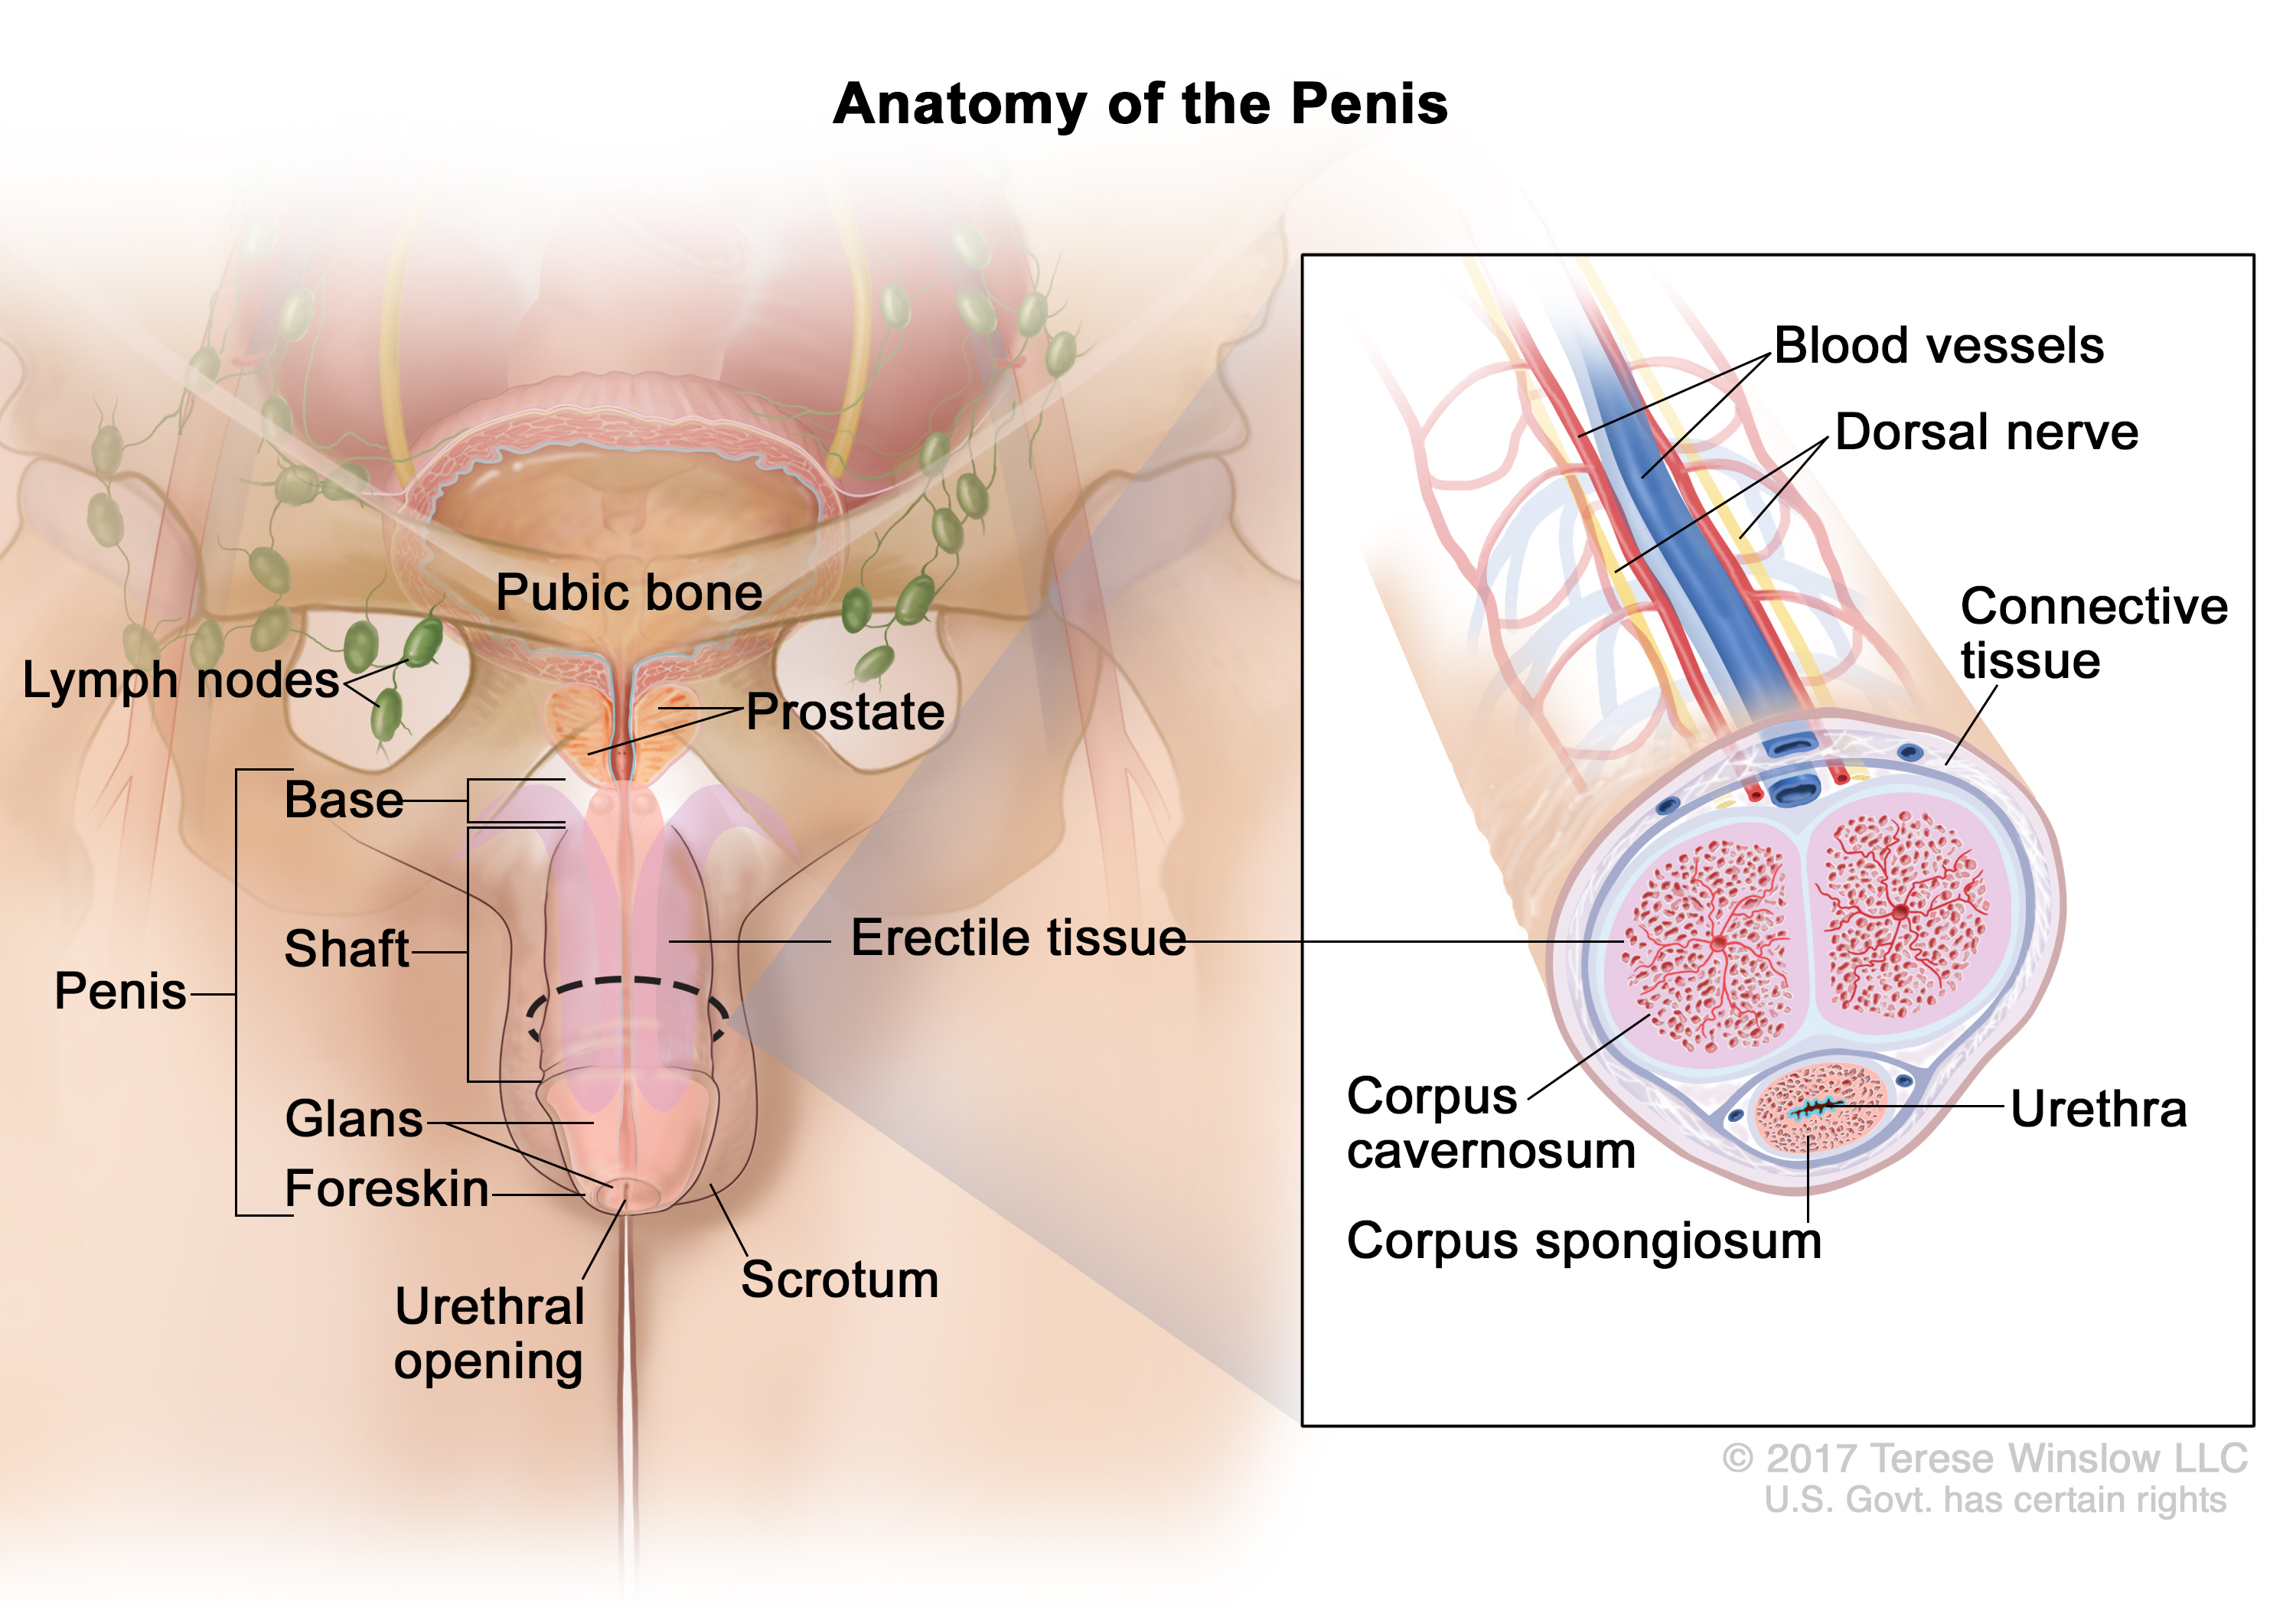 The role of ultrasound in the diagnosis of penile fracture